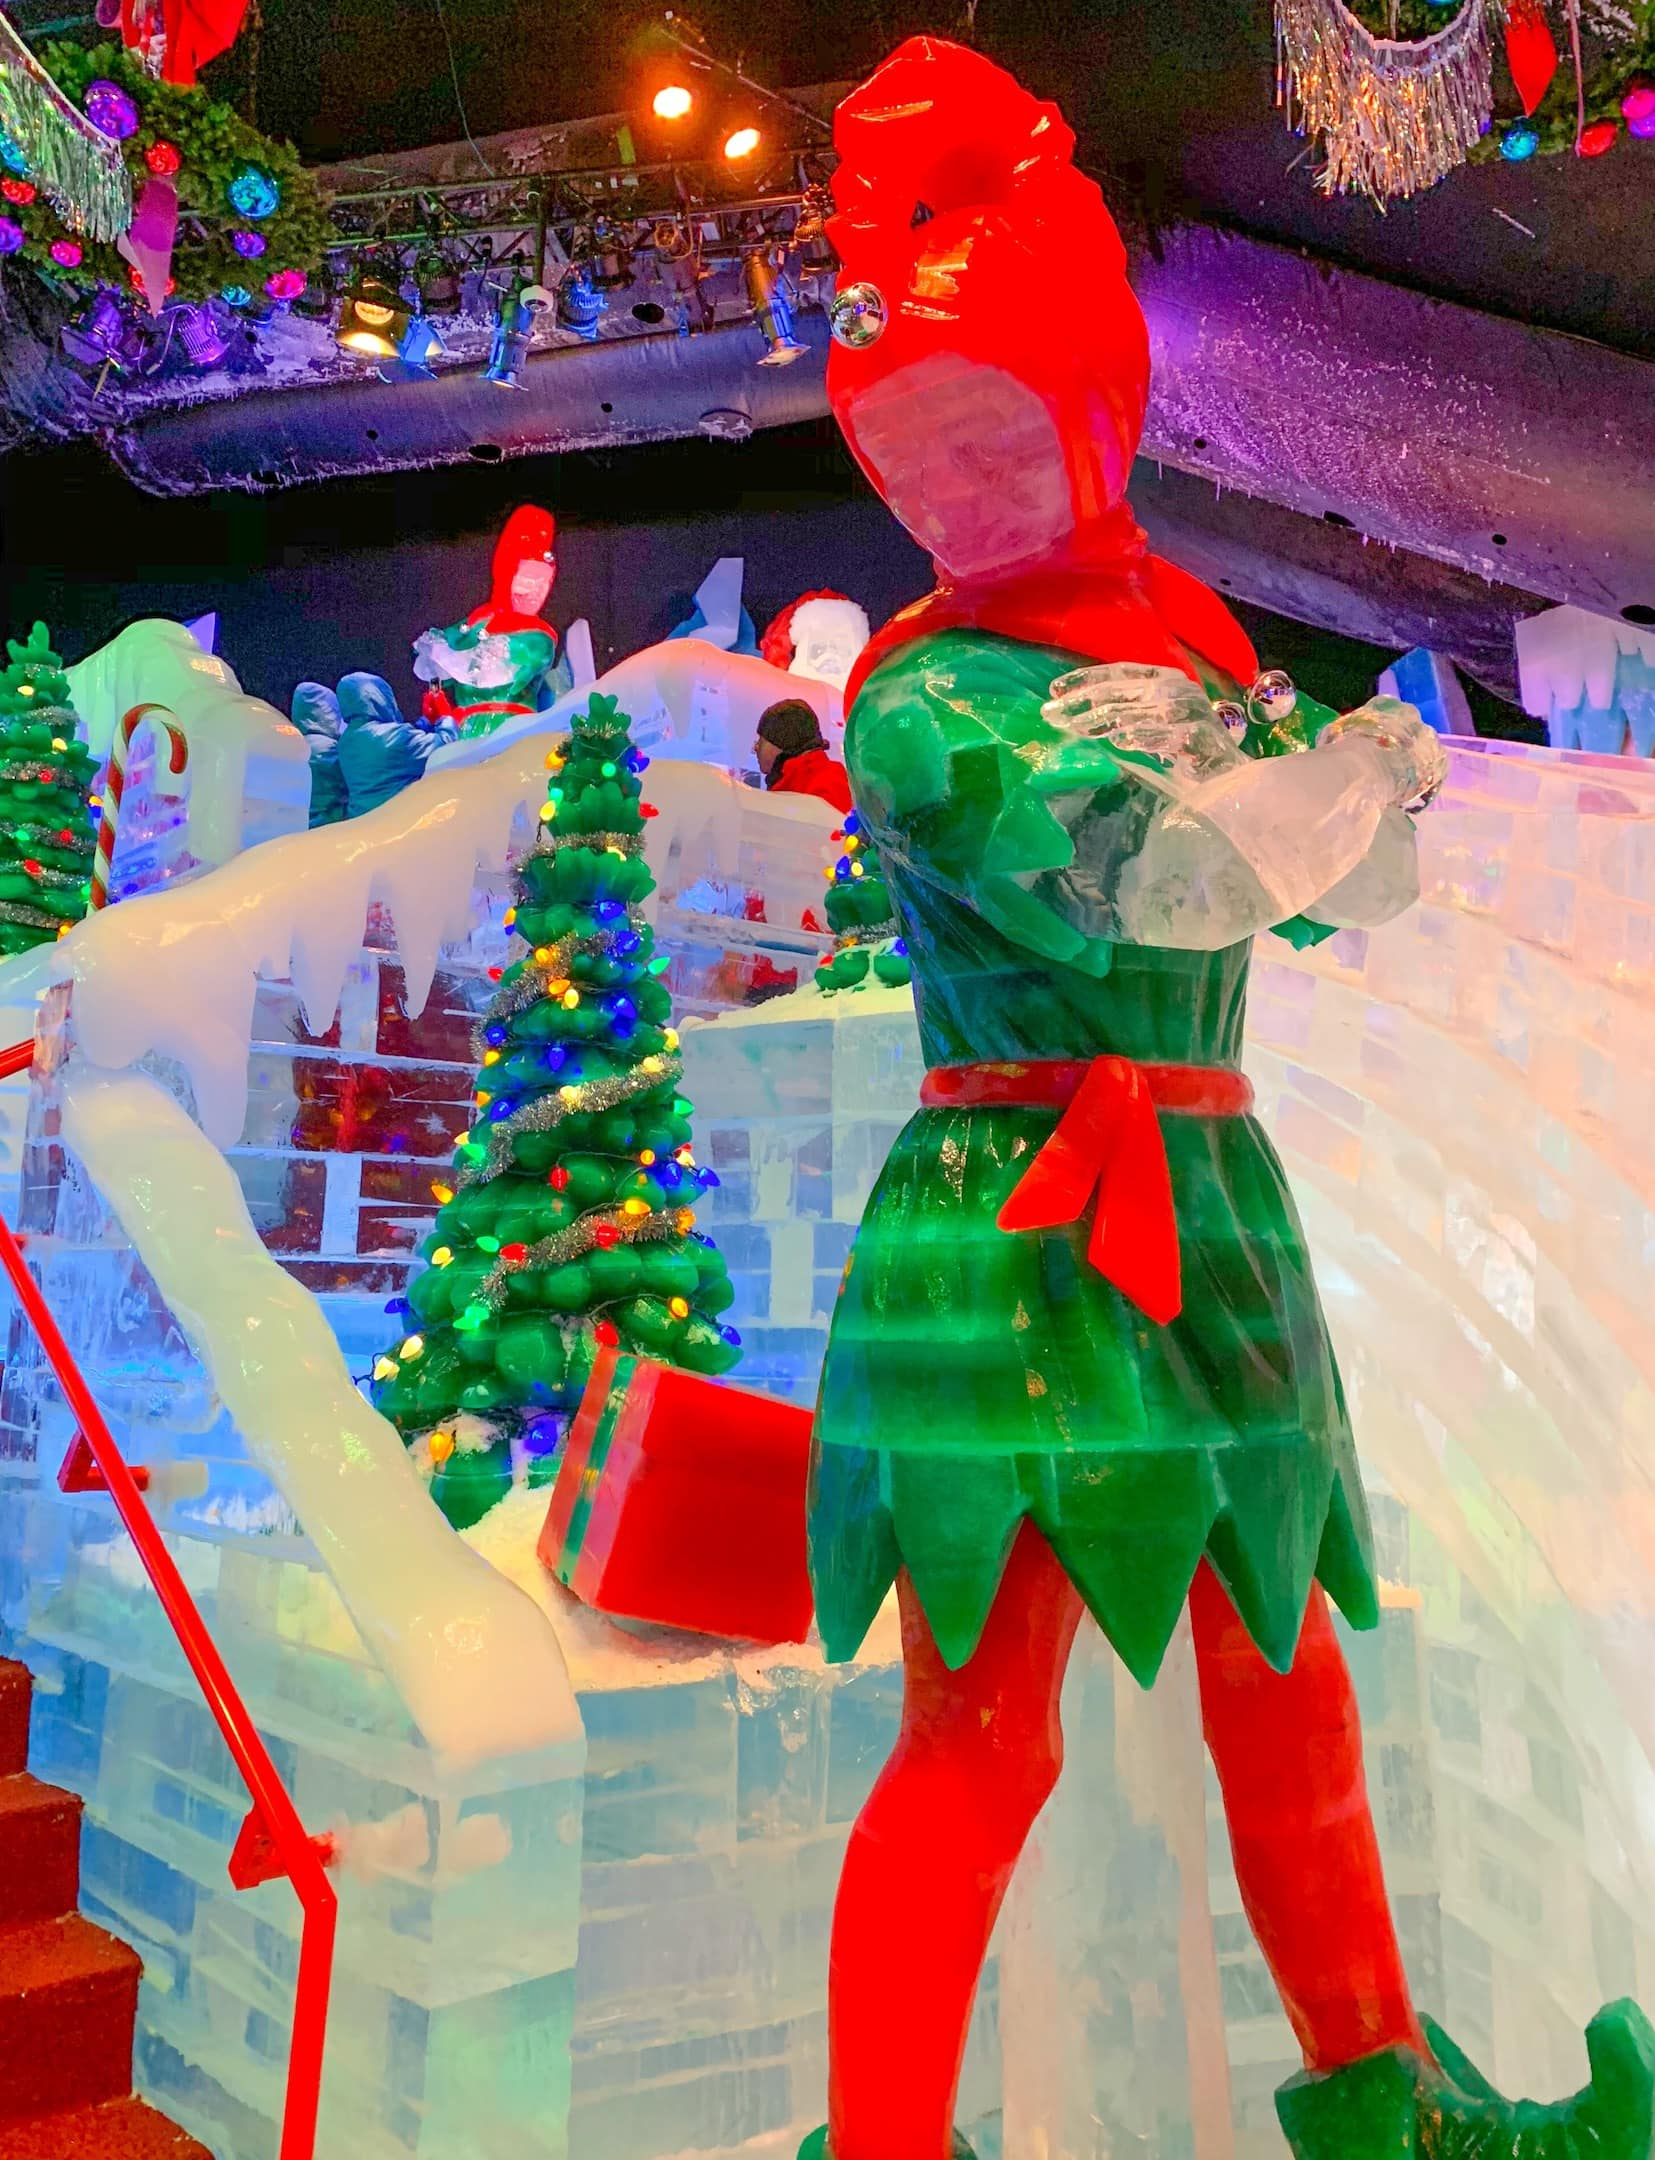 Gaylord Palms ICE 2018 A Christmas Story Orlando Elf Ice Slides